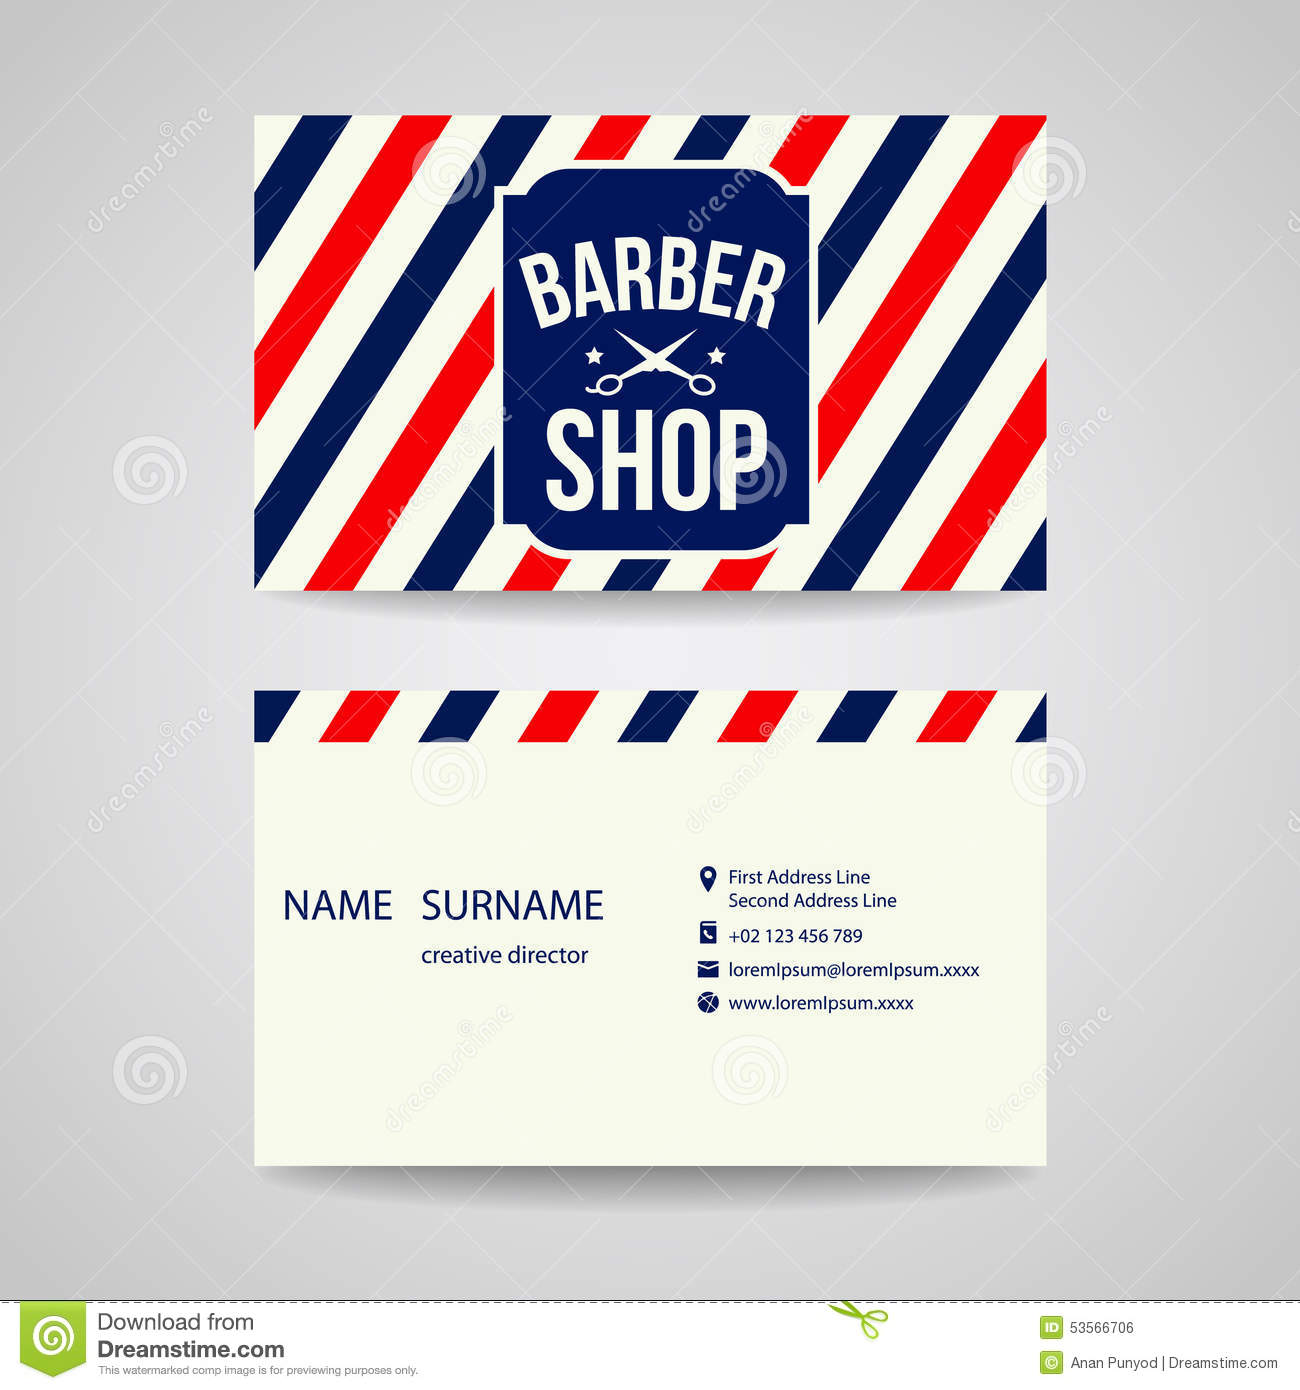 Business Card Template Design For Barber Shop Stock Vector - Image ...